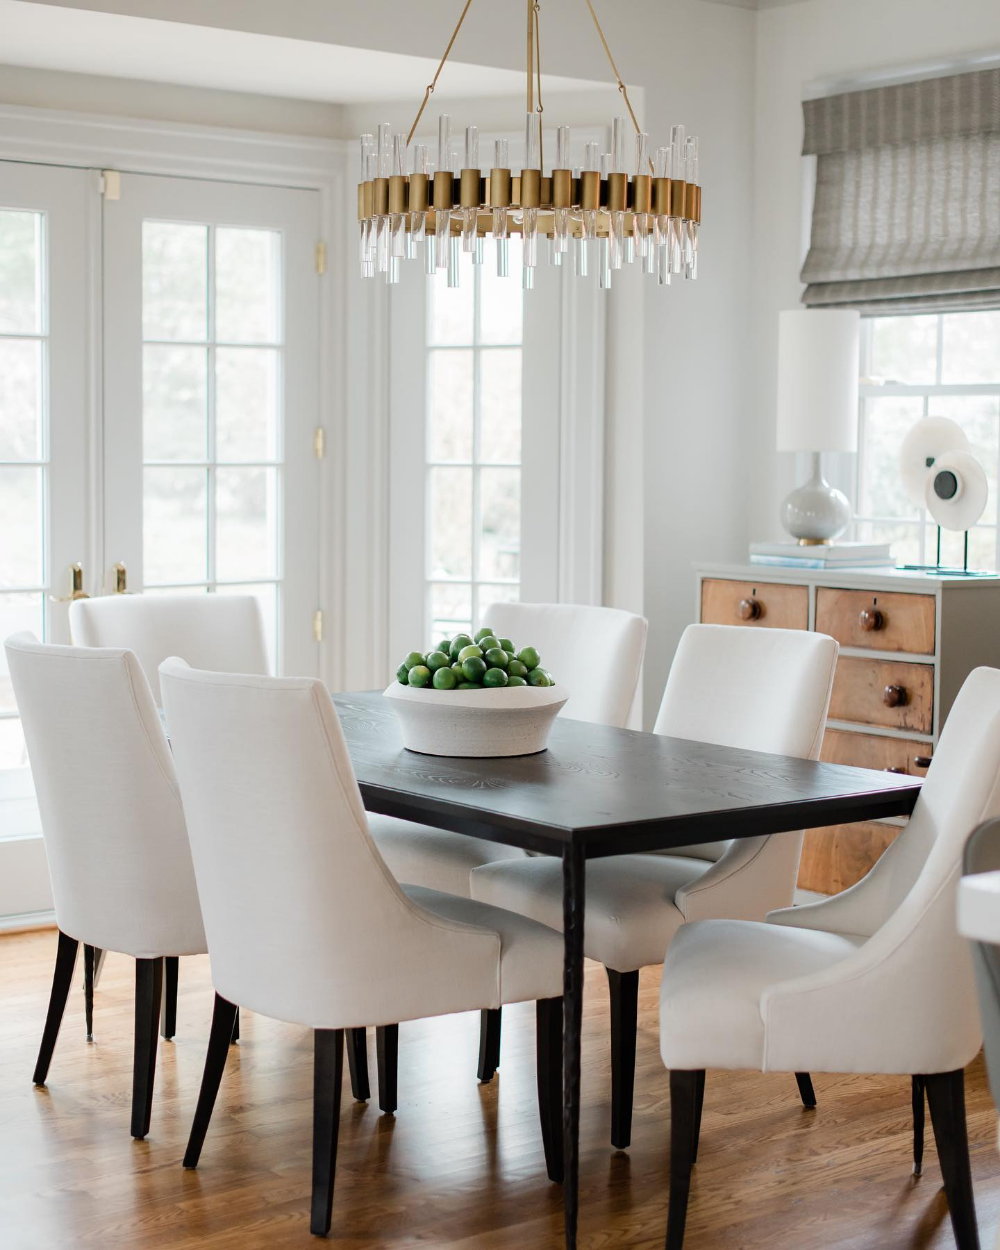 Acrylic Chandelier Elevates Transitional Dining Room Transitional Dining Room Transitional Chandeliers Home Decor